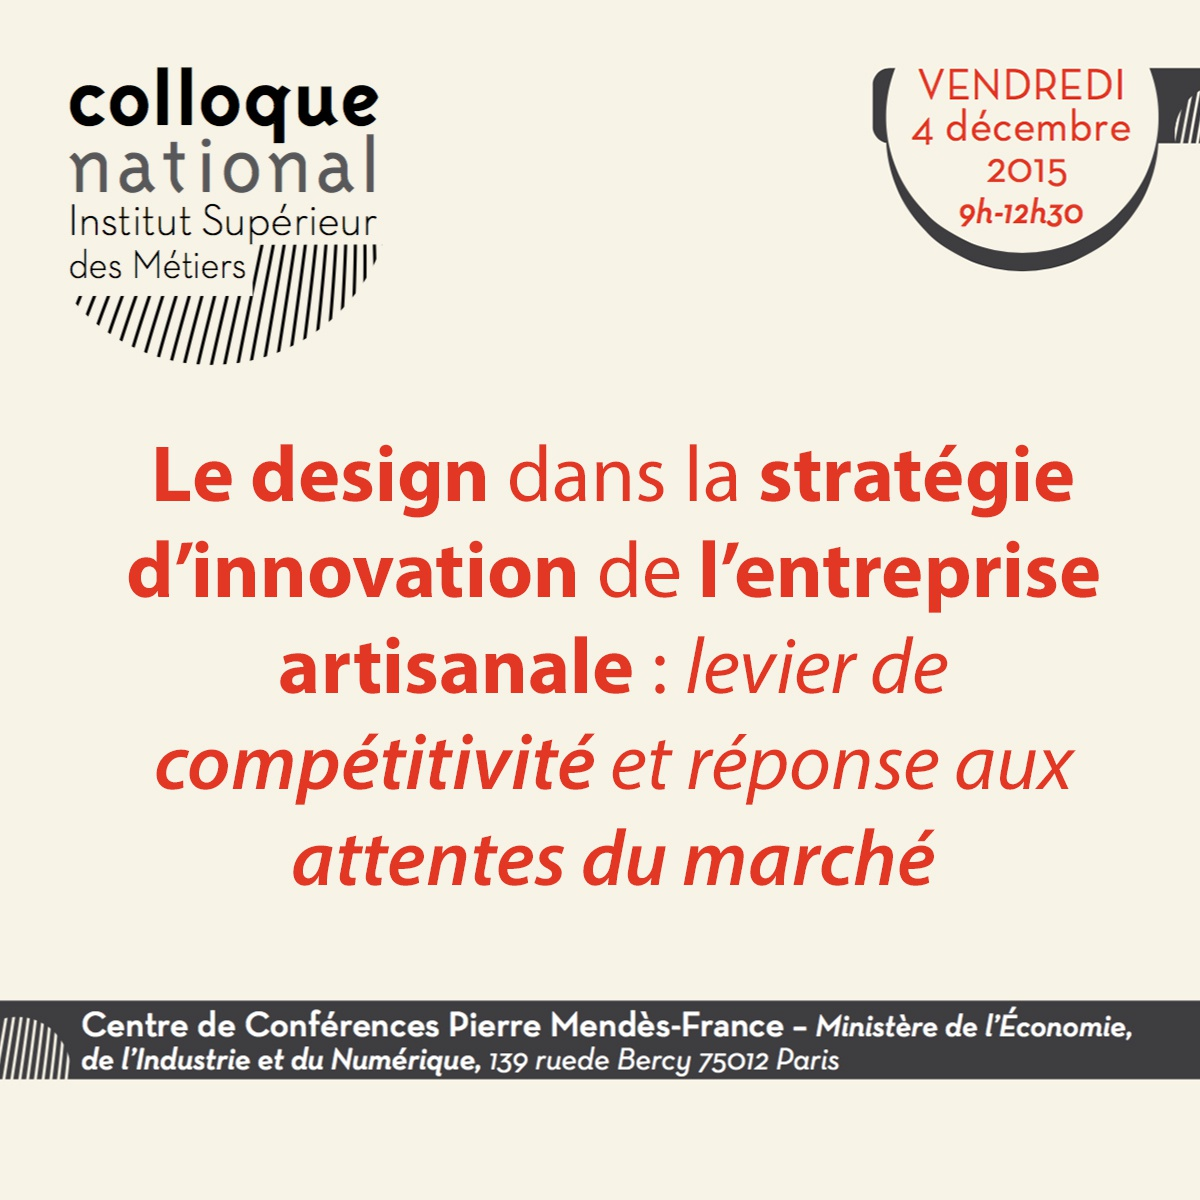 Colloque ISM design 2015